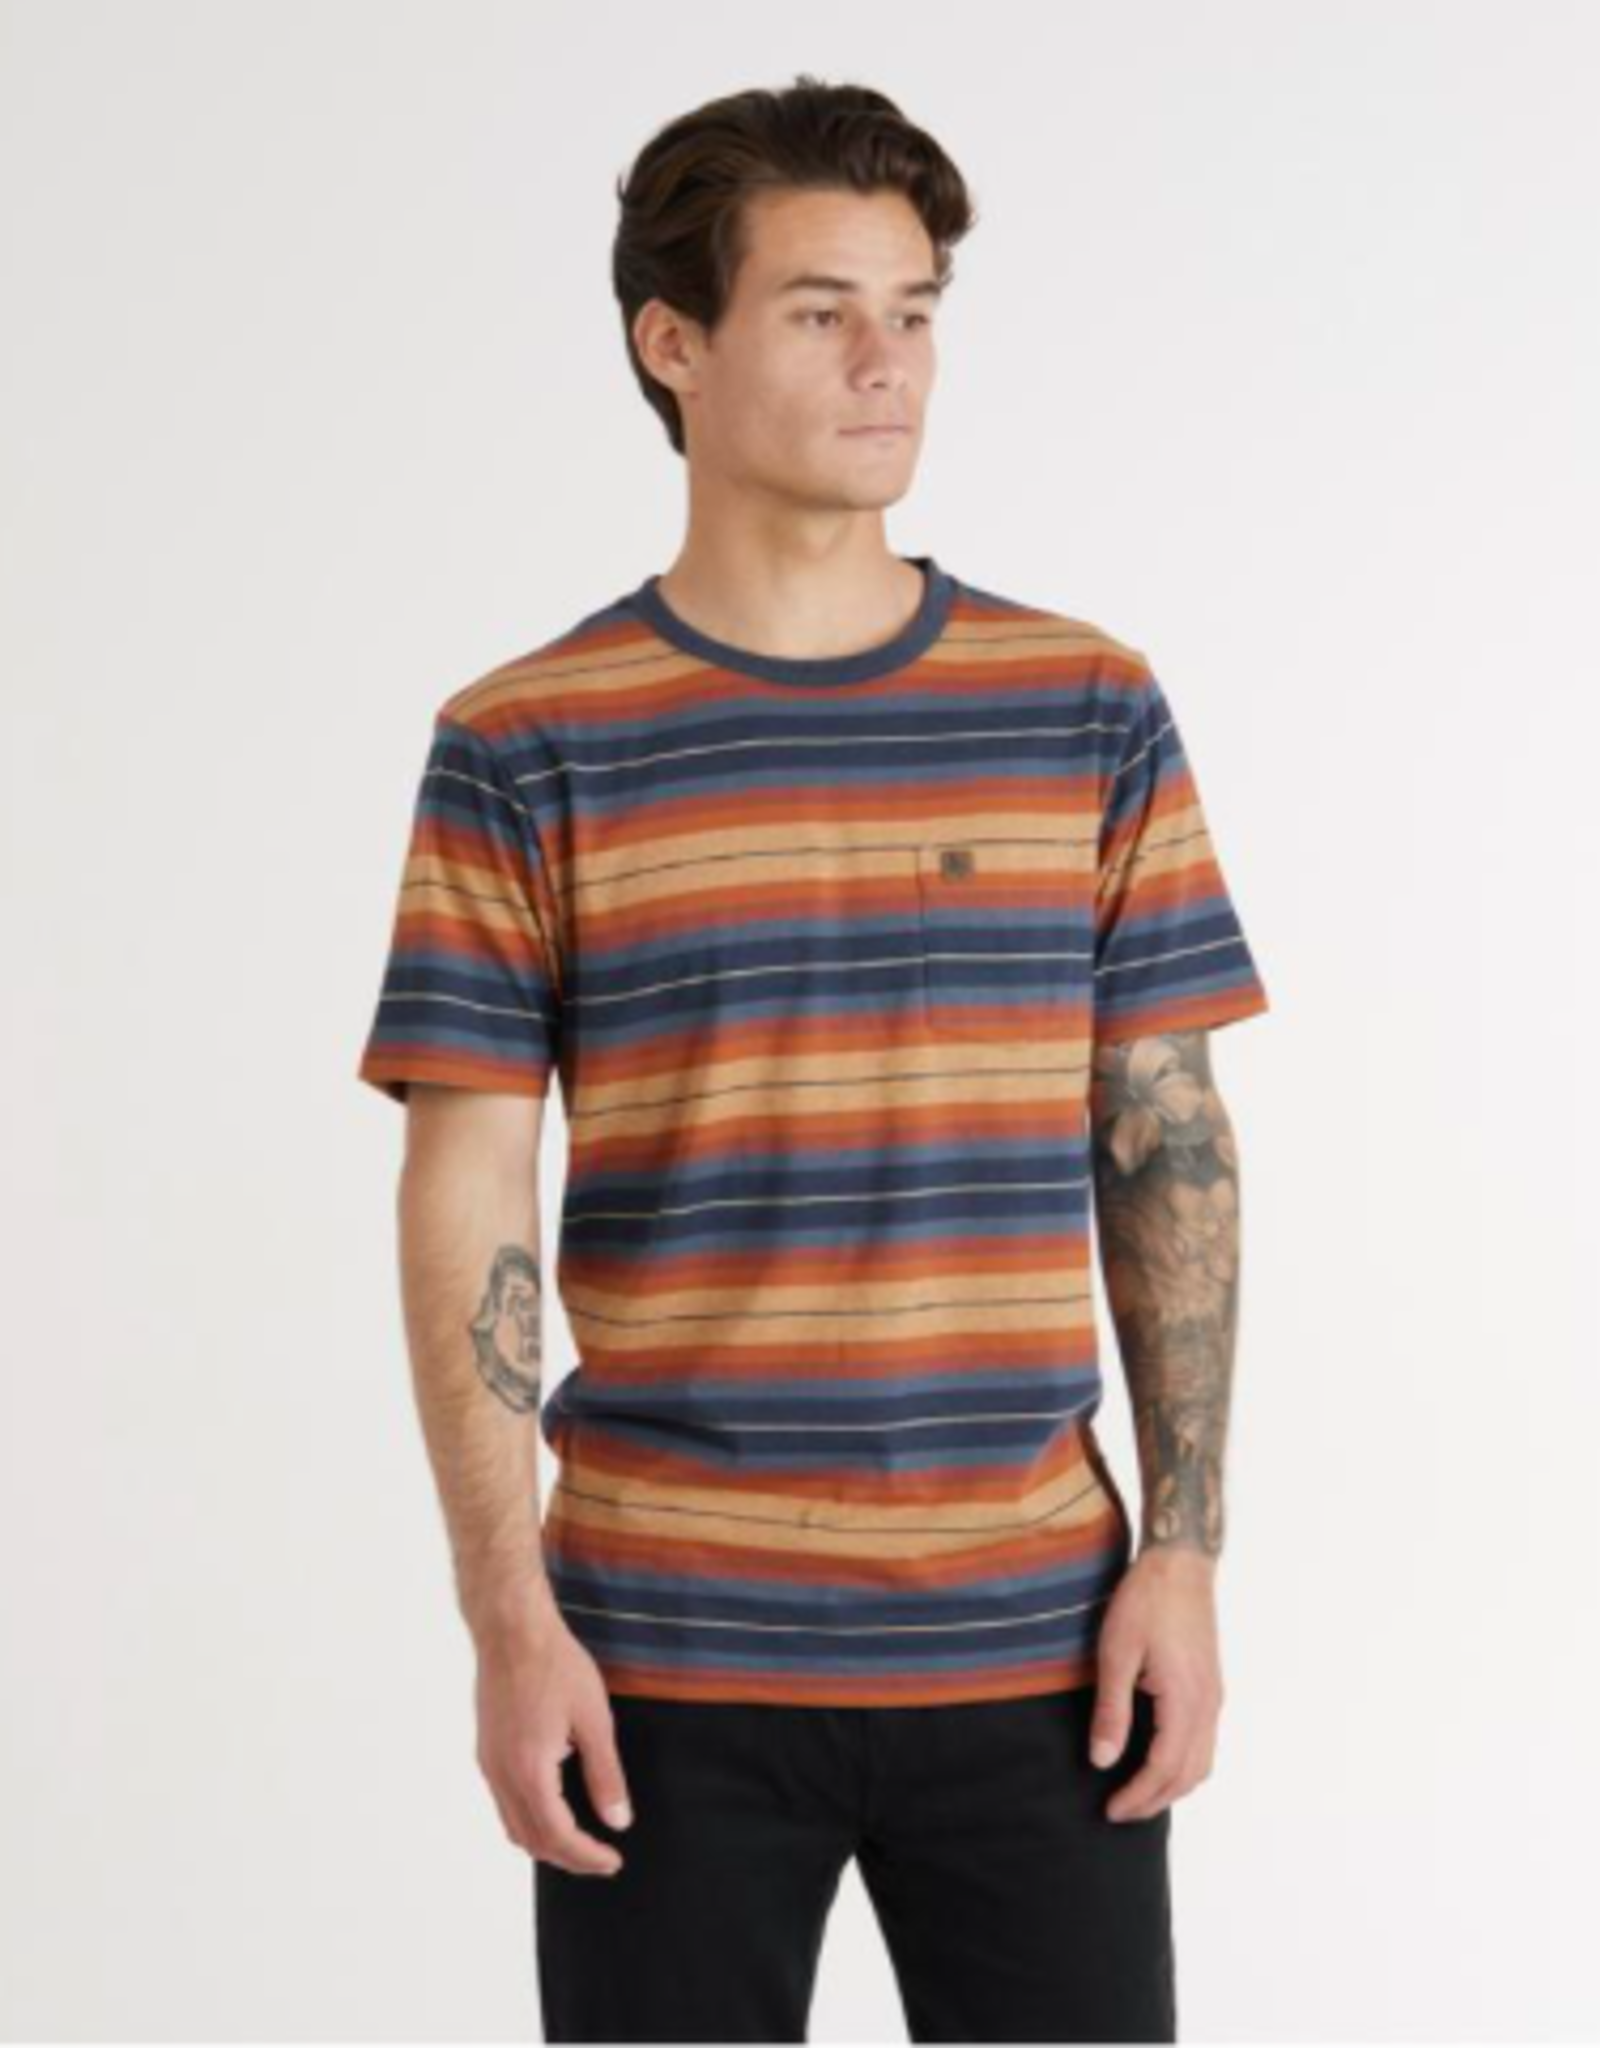 HippY Tree Cold Creek Knit Tee